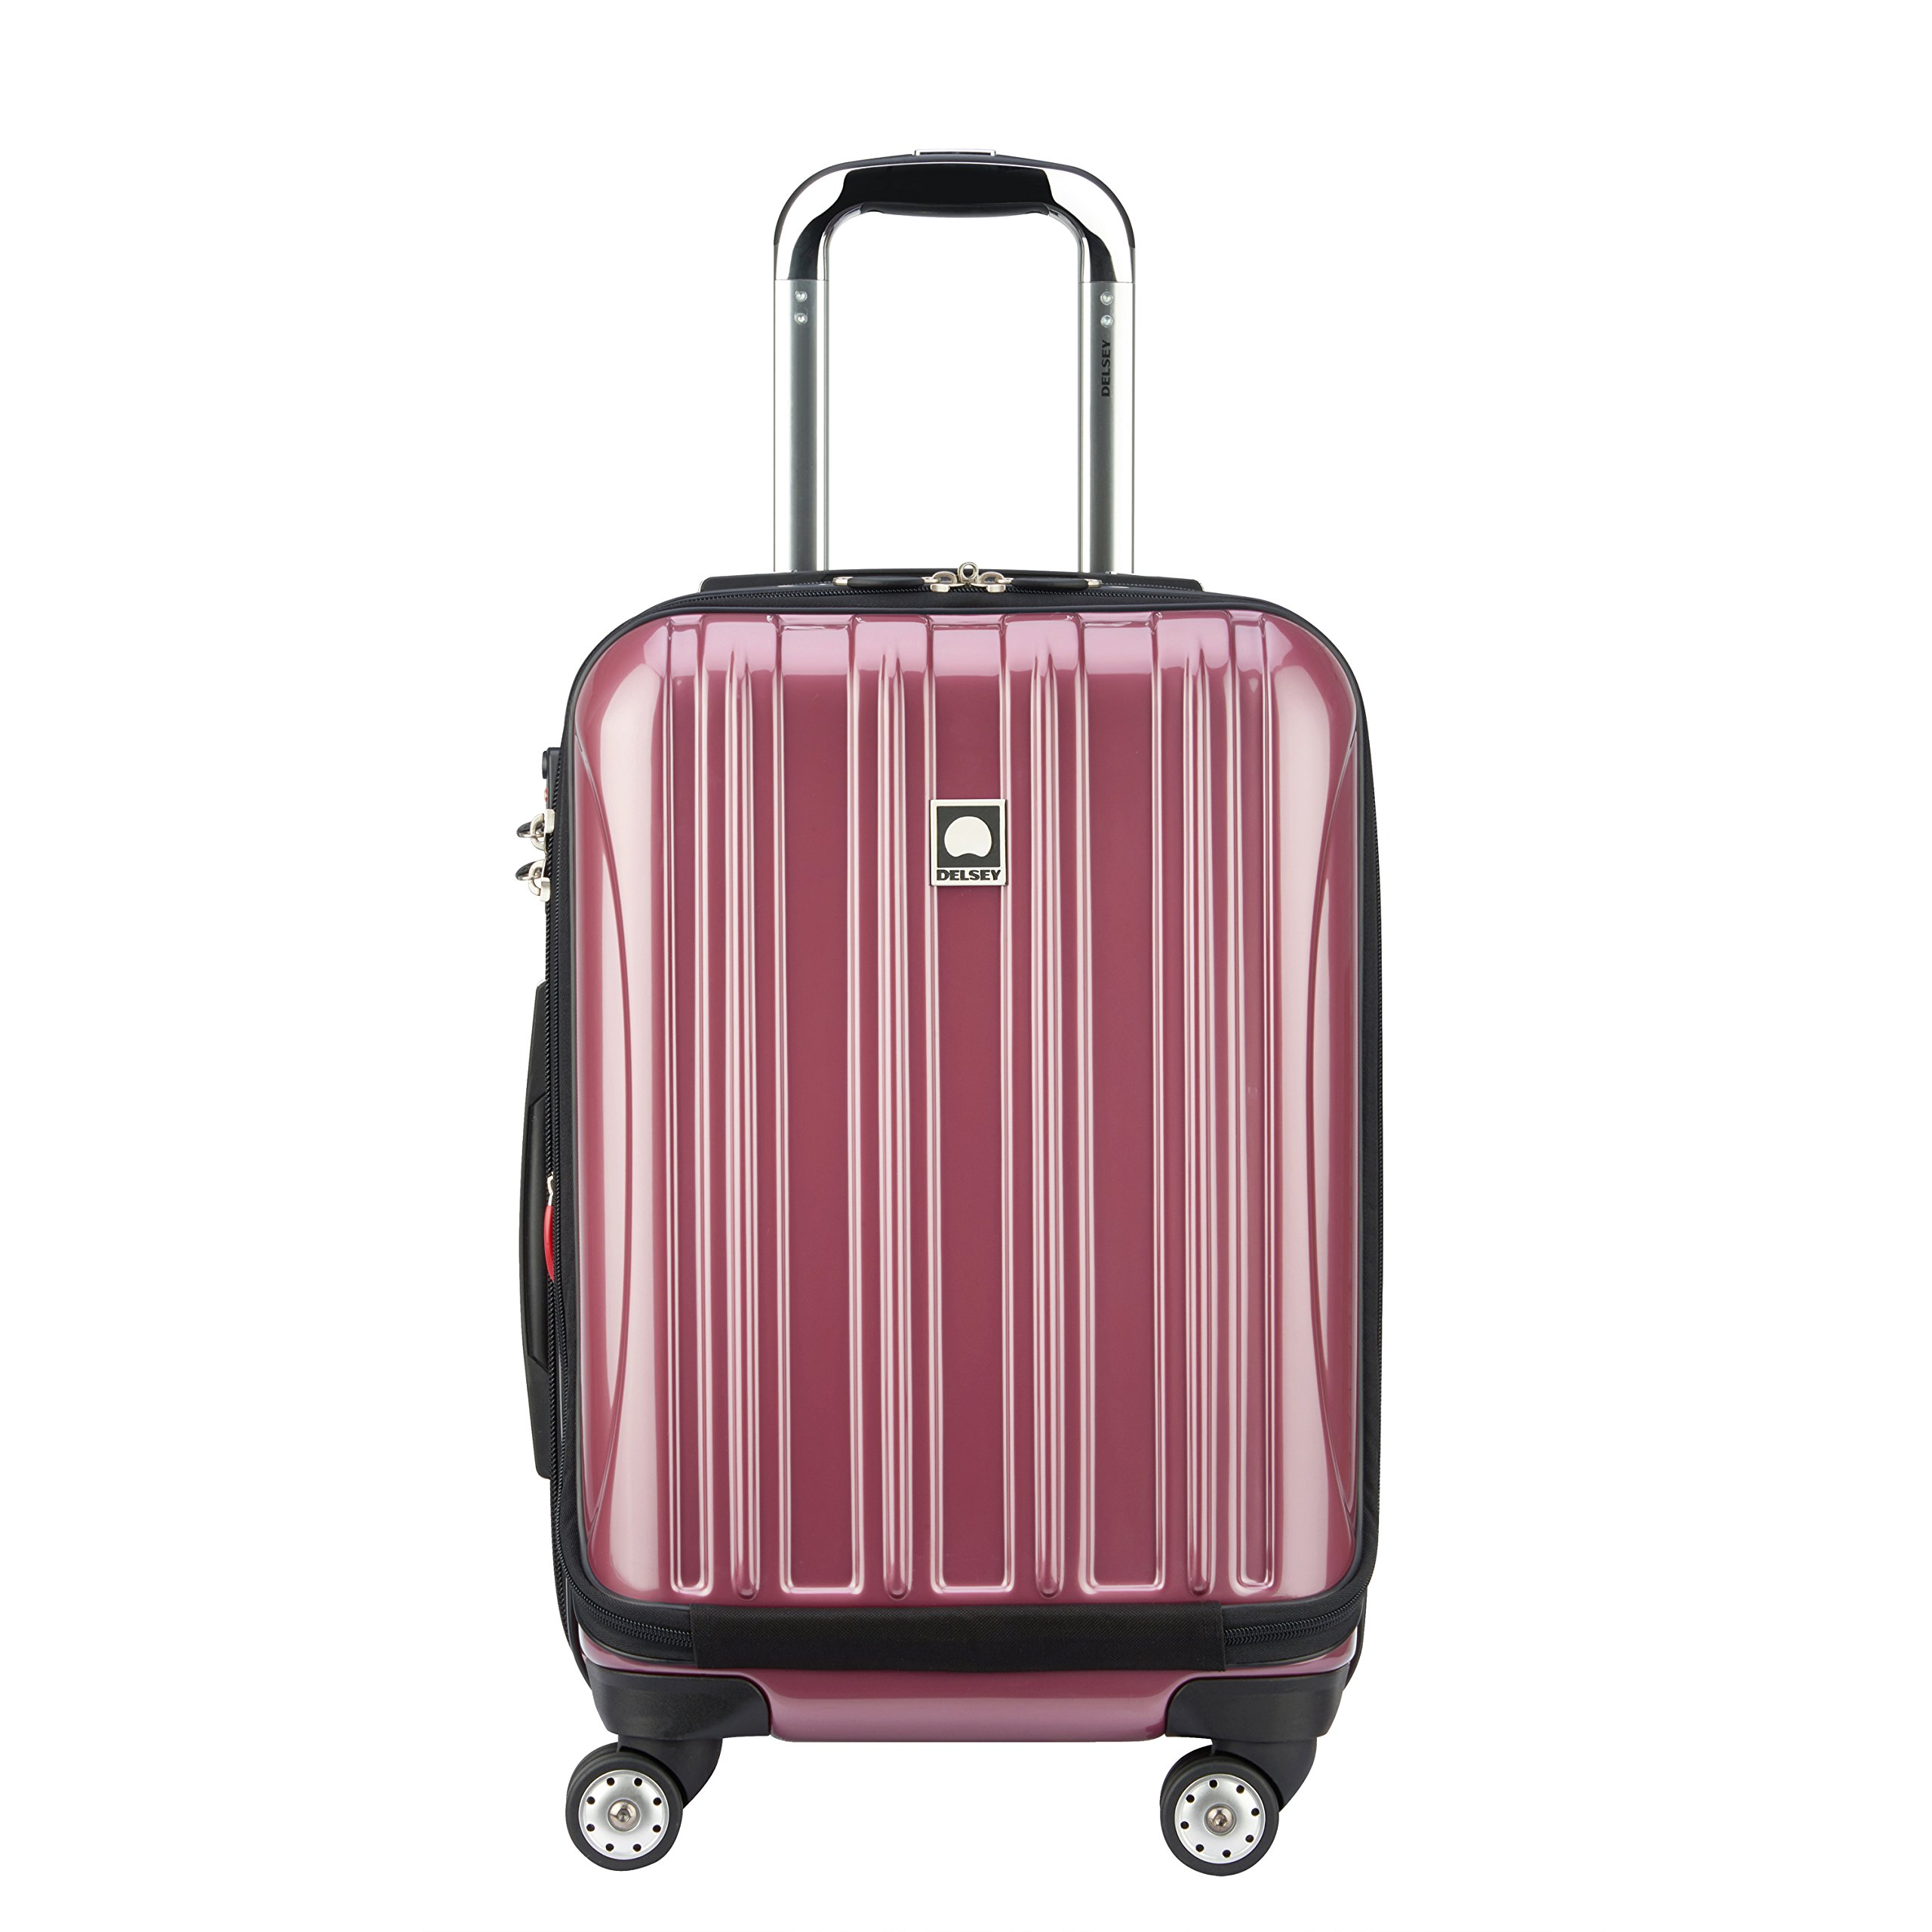 Delsey Luggage Helium Aero, International Carry On Luggage, Front Pocket Hard Case Spinner Suitcase, Peony Pink